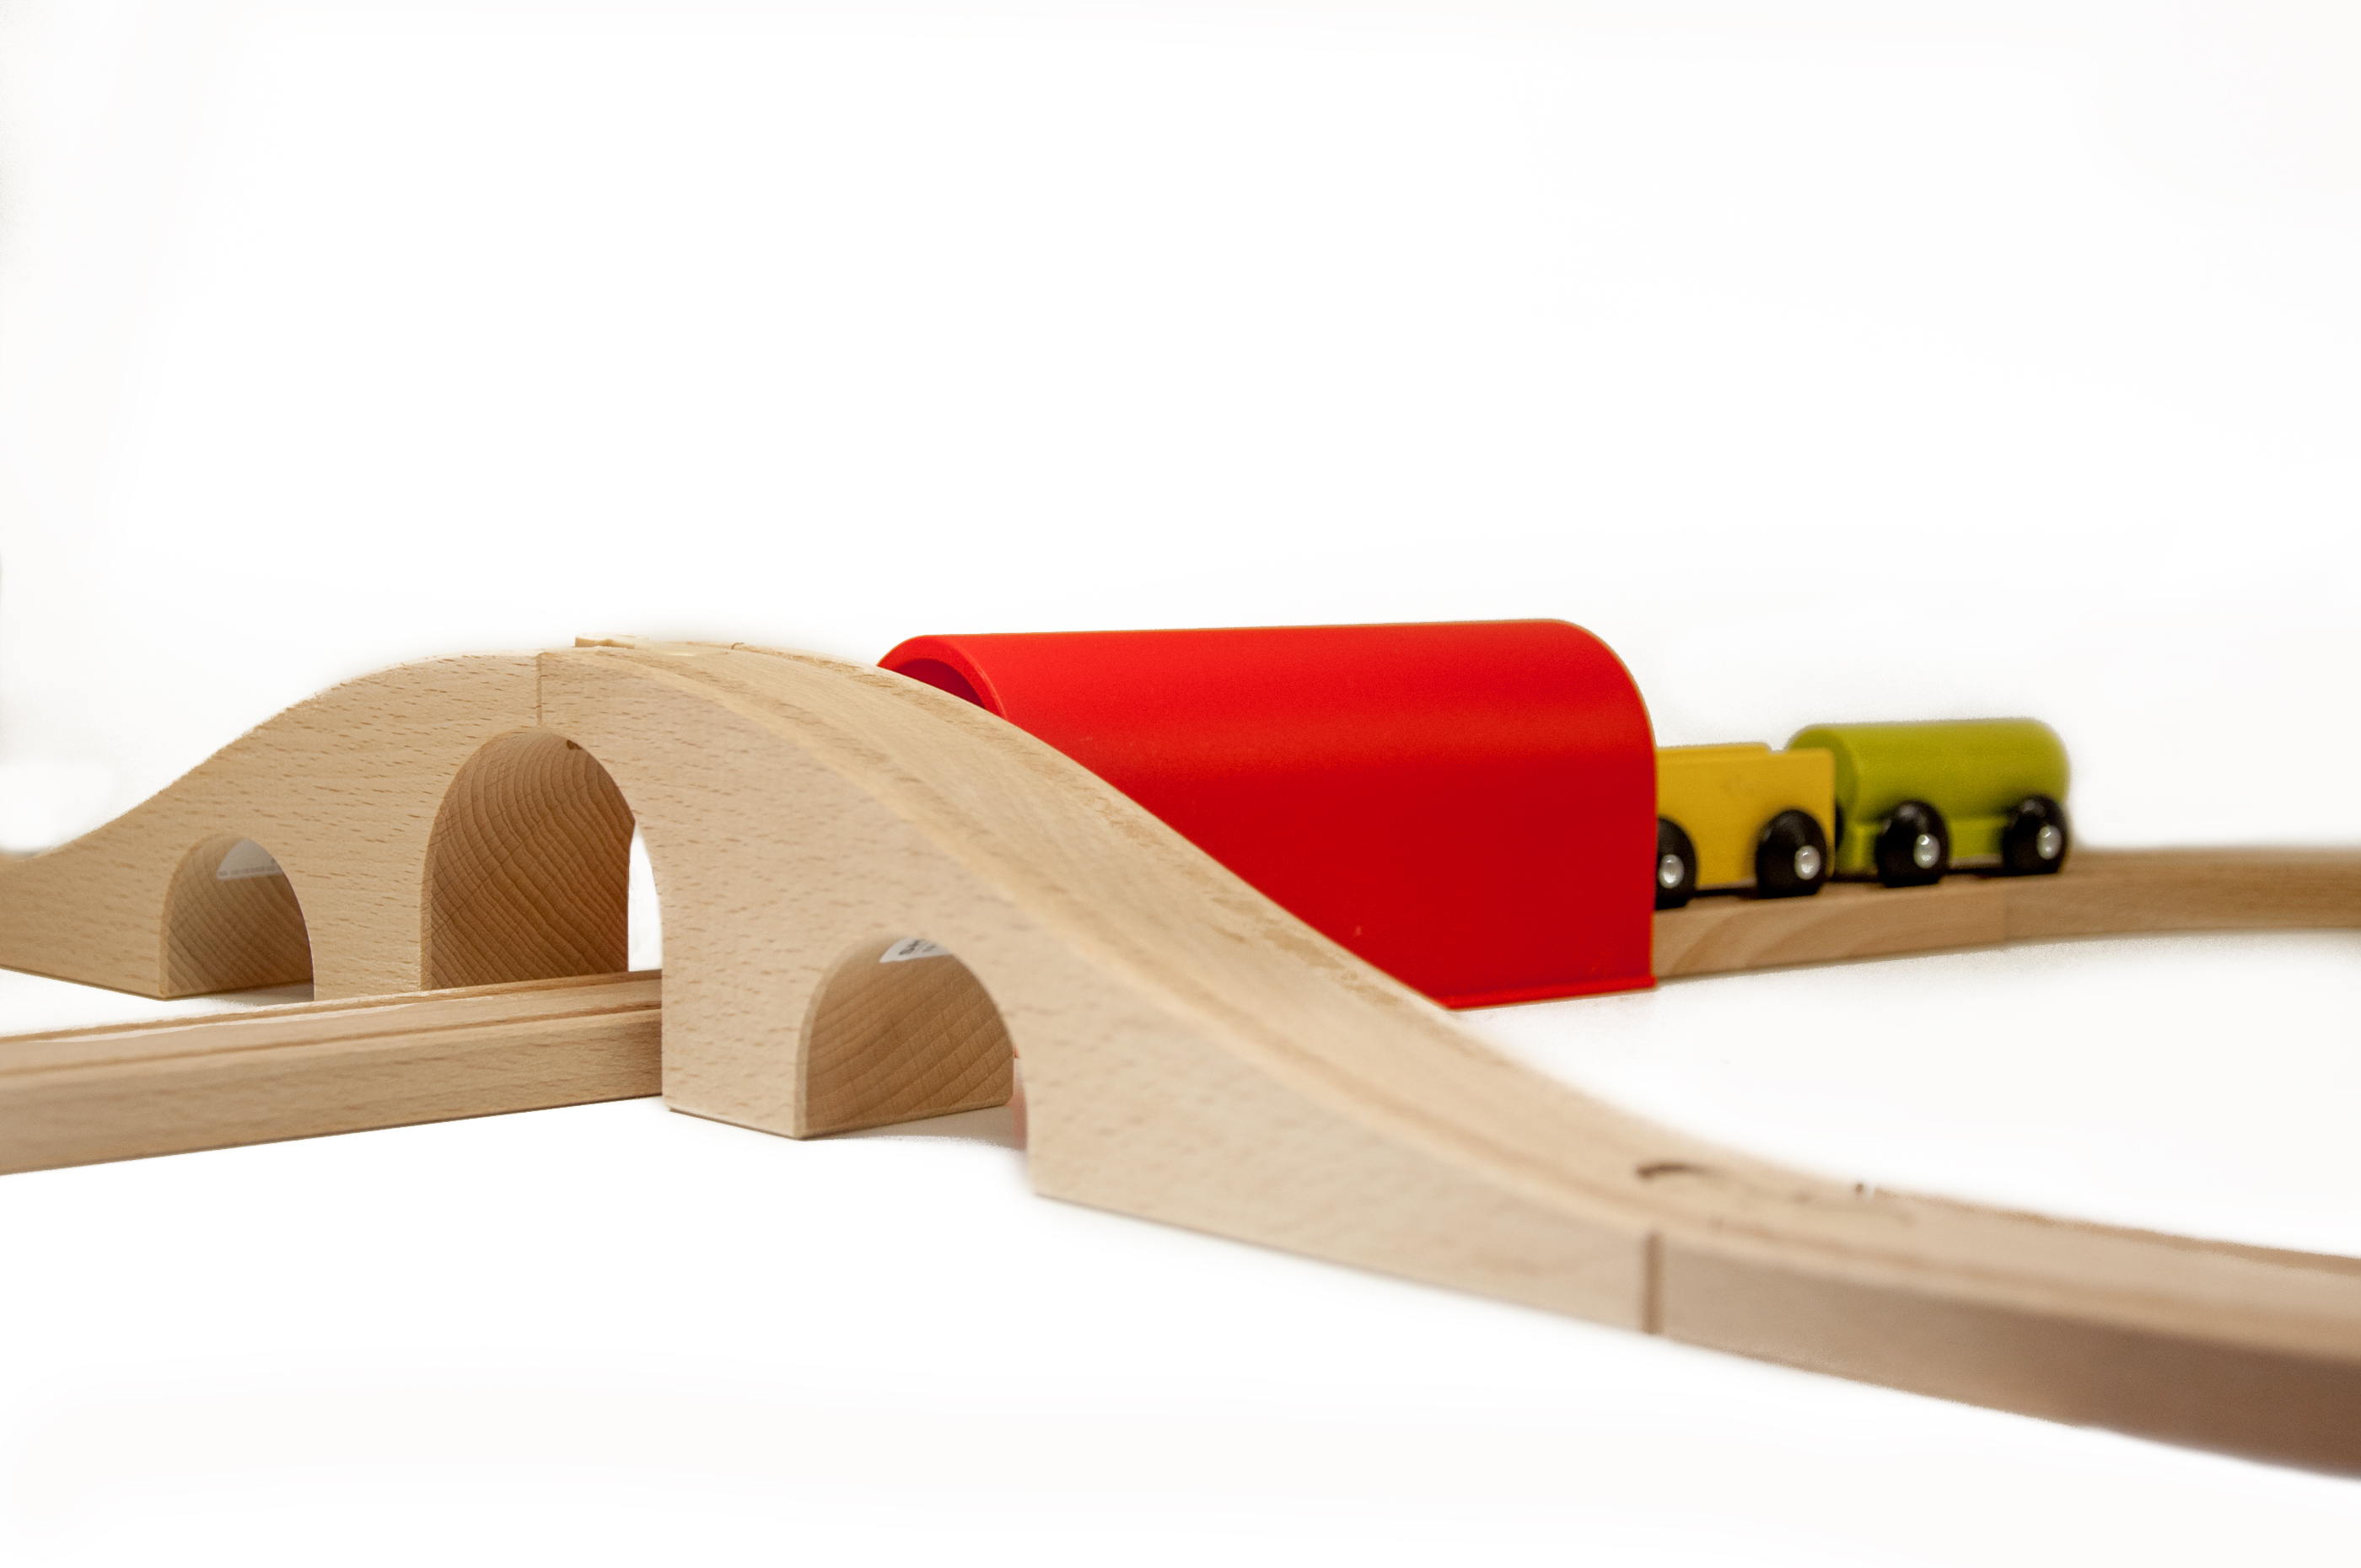 Wooden toy train on railroad photo